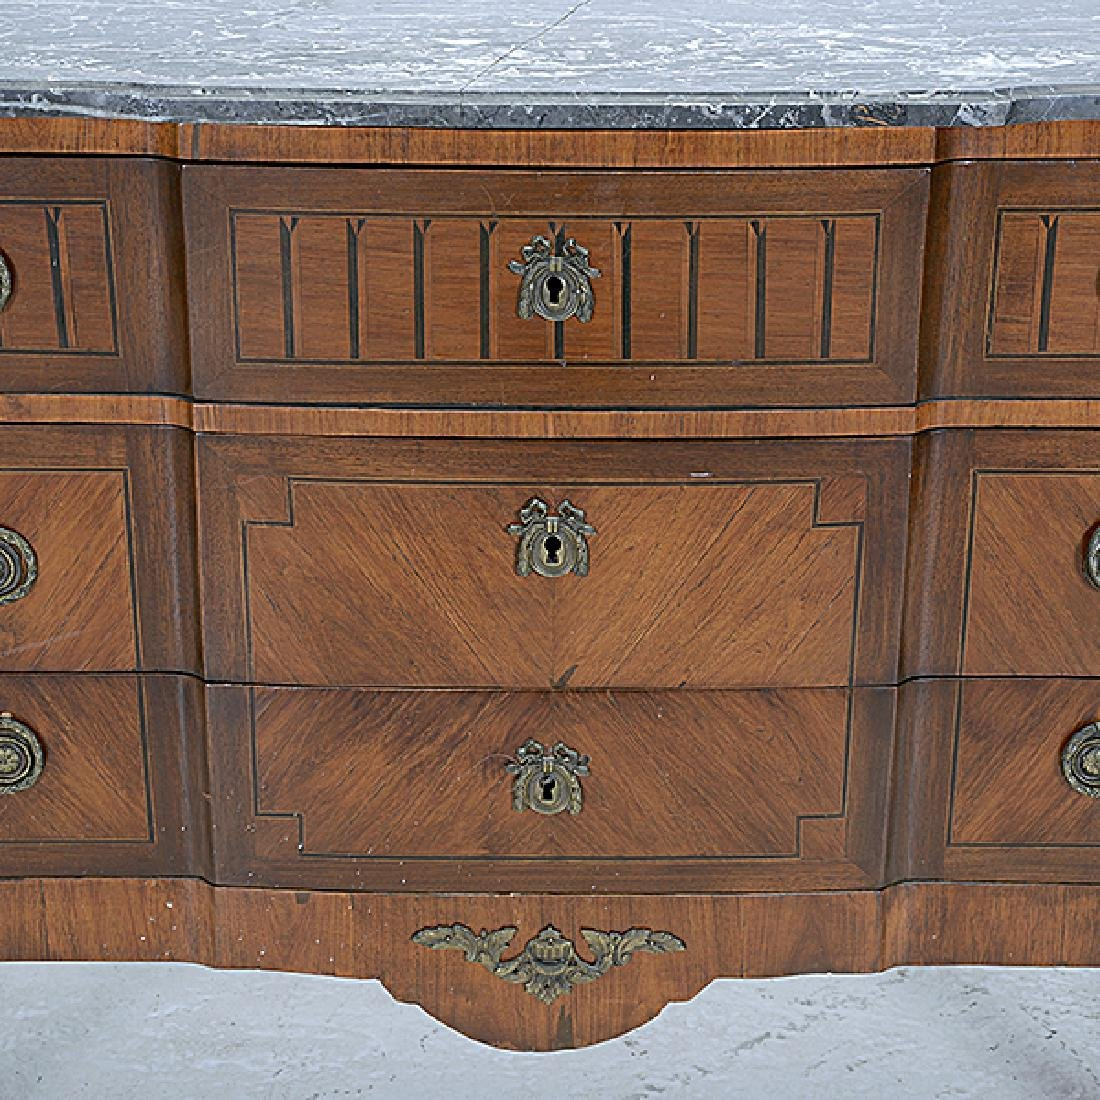 Louis XVI Style Marble Top Kingwood Marquetry Commode - 4